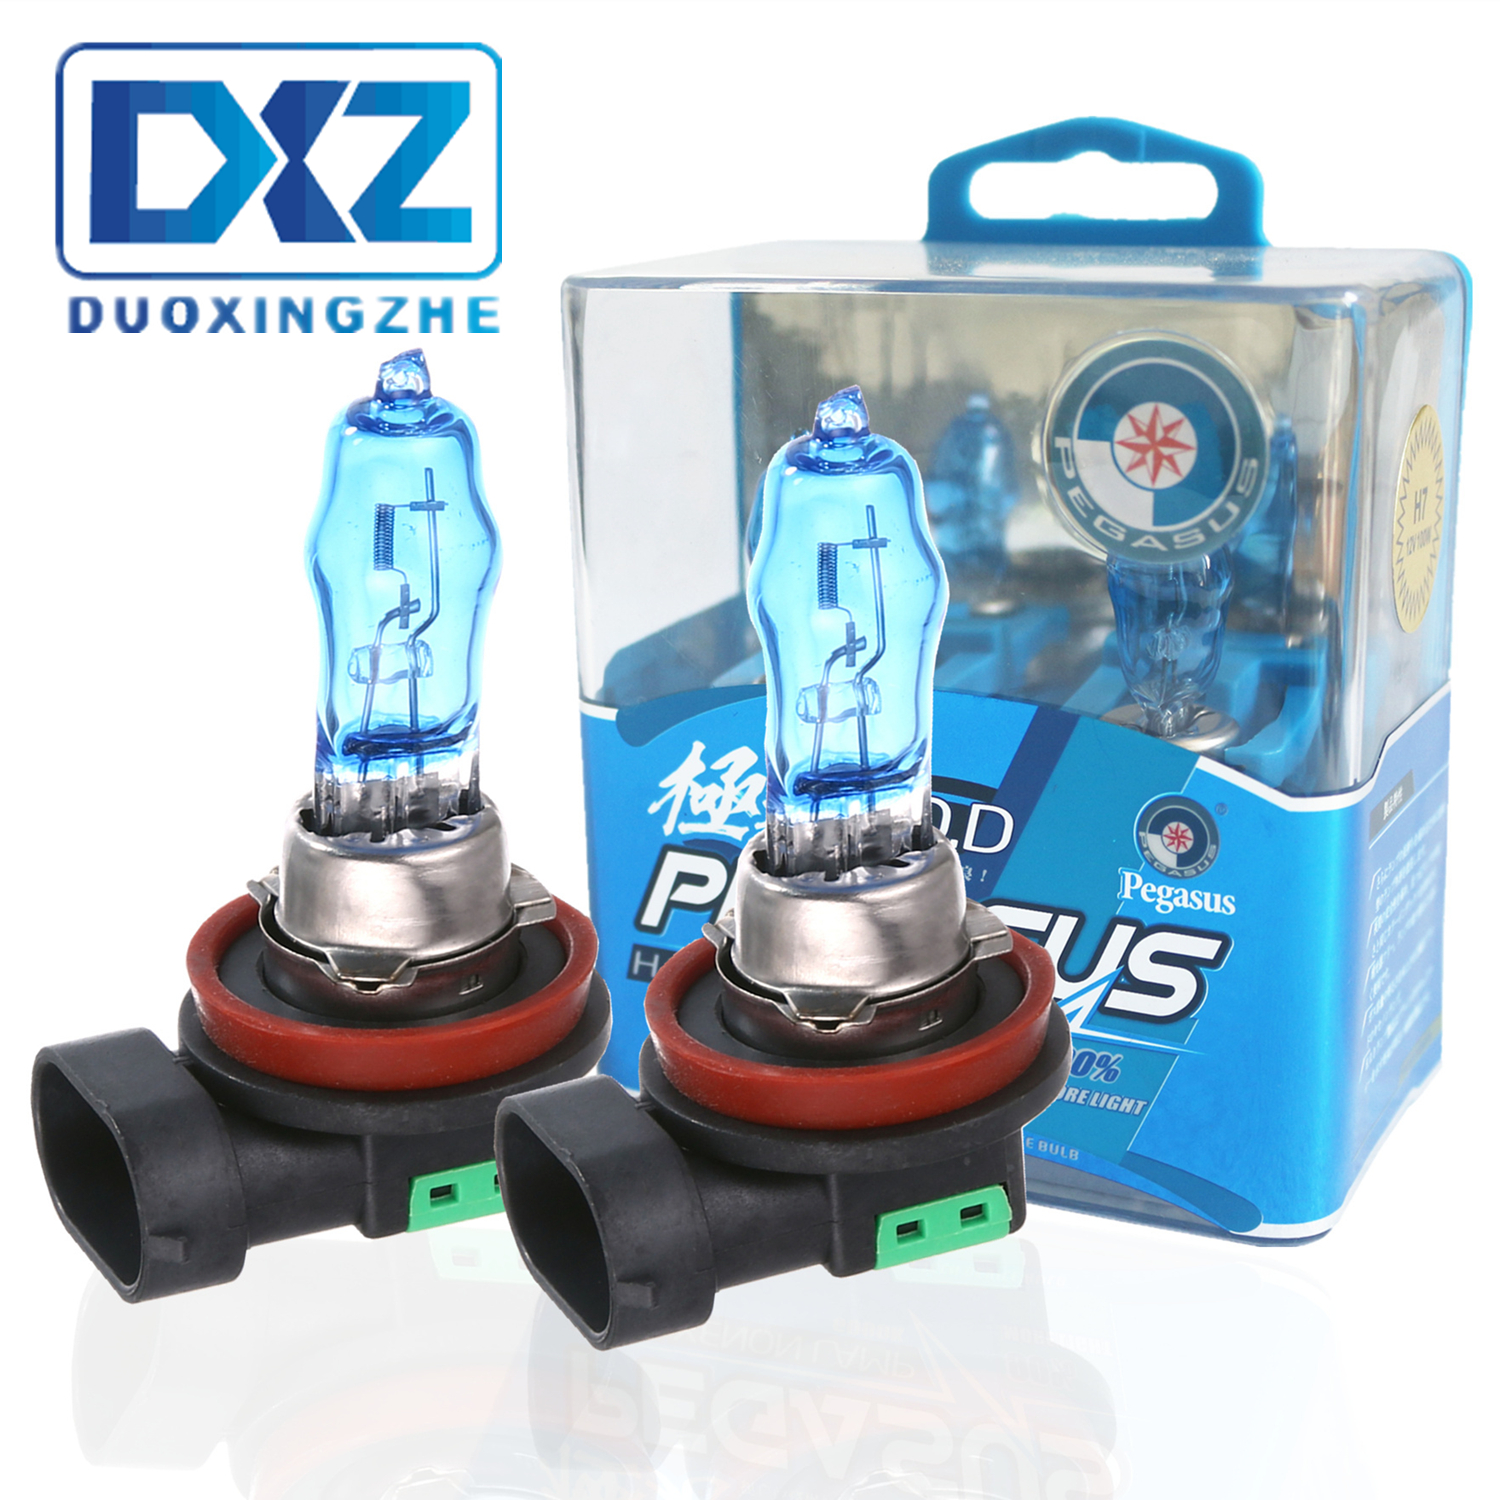 DXZ 2Pcs H8 H9 12V 100W 6000K Car HOD H11 Super White Halogen Light Source Bulbs Auto Headlights Lamp Automobile Fog Light Bulbs